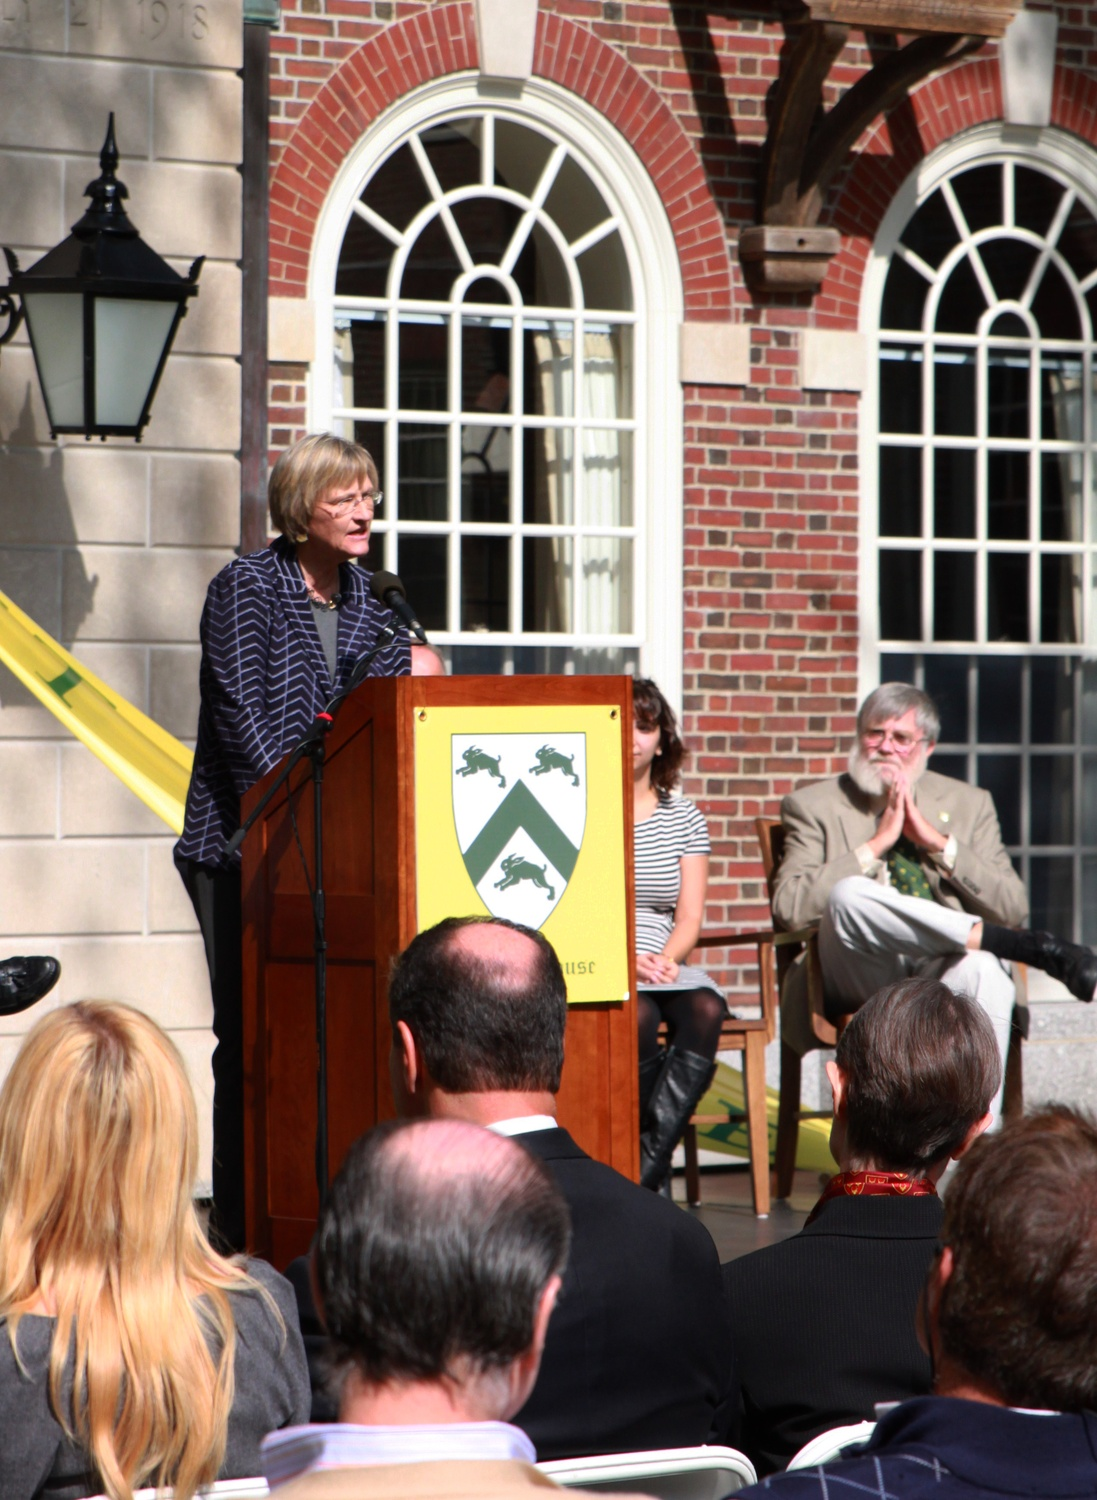 University President Drew G. Faust speaks in the courtyard of McKinlock Hall about the importance of House Renewal for Harvard as an institution.